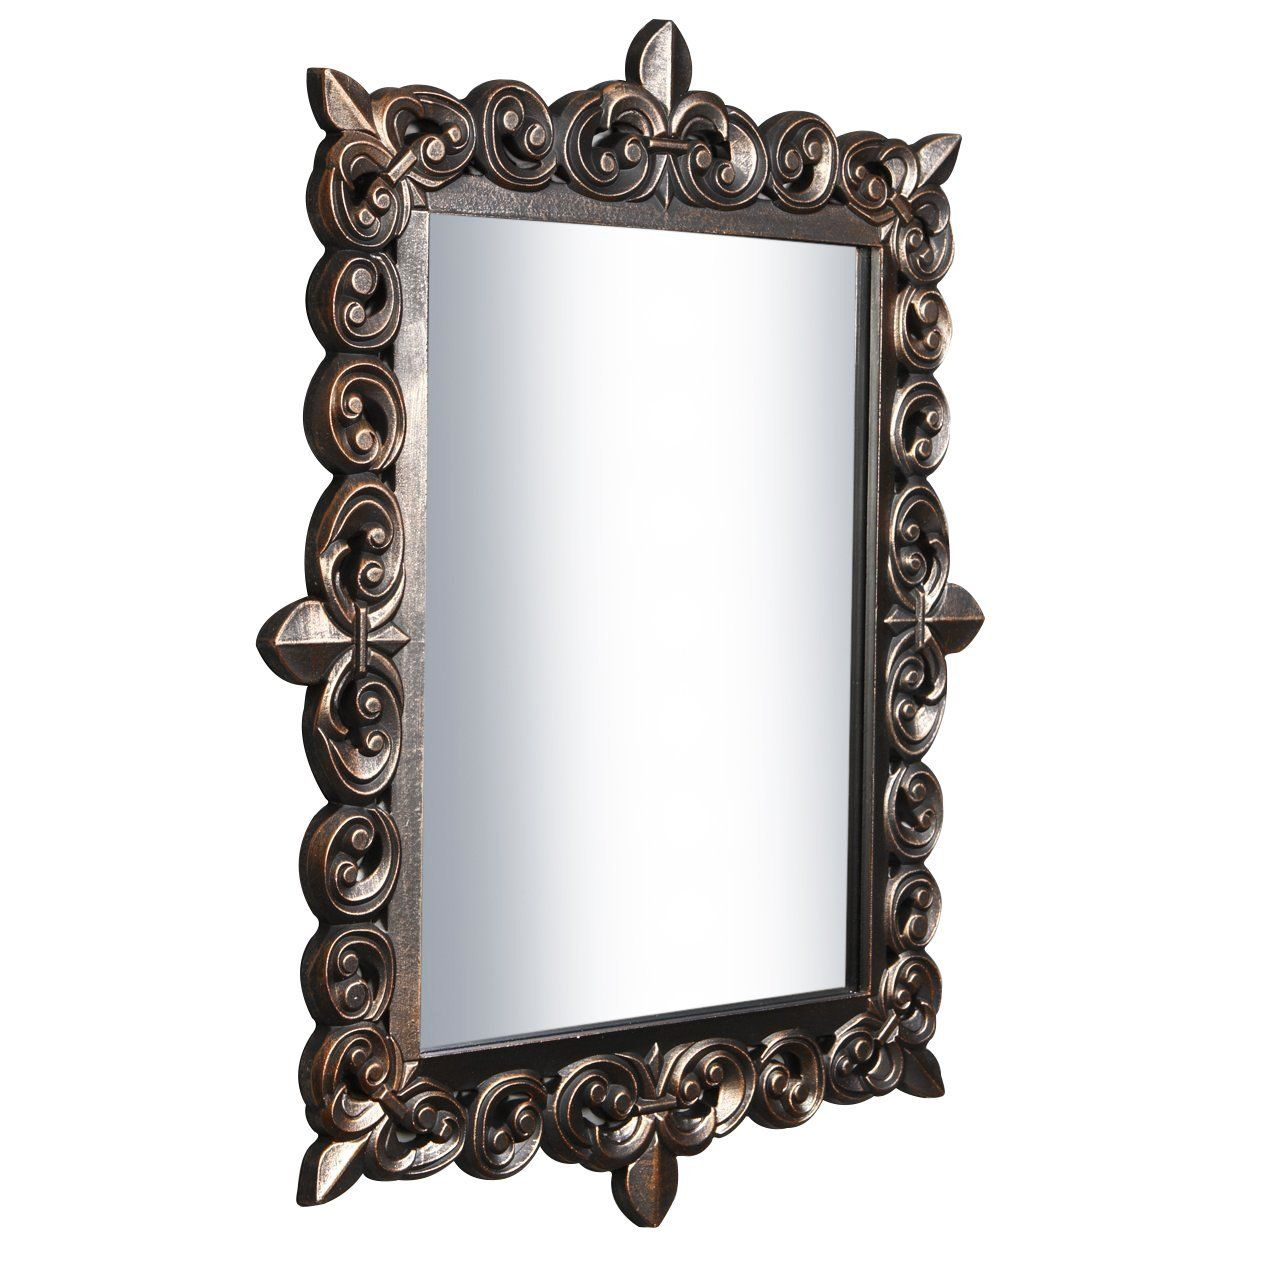 Jharokha wall mirror from india as described by russell johnson large heavy duty square baroque ornate wall hanging rococo mirror gold bronze amazon amipublicfo Gallery